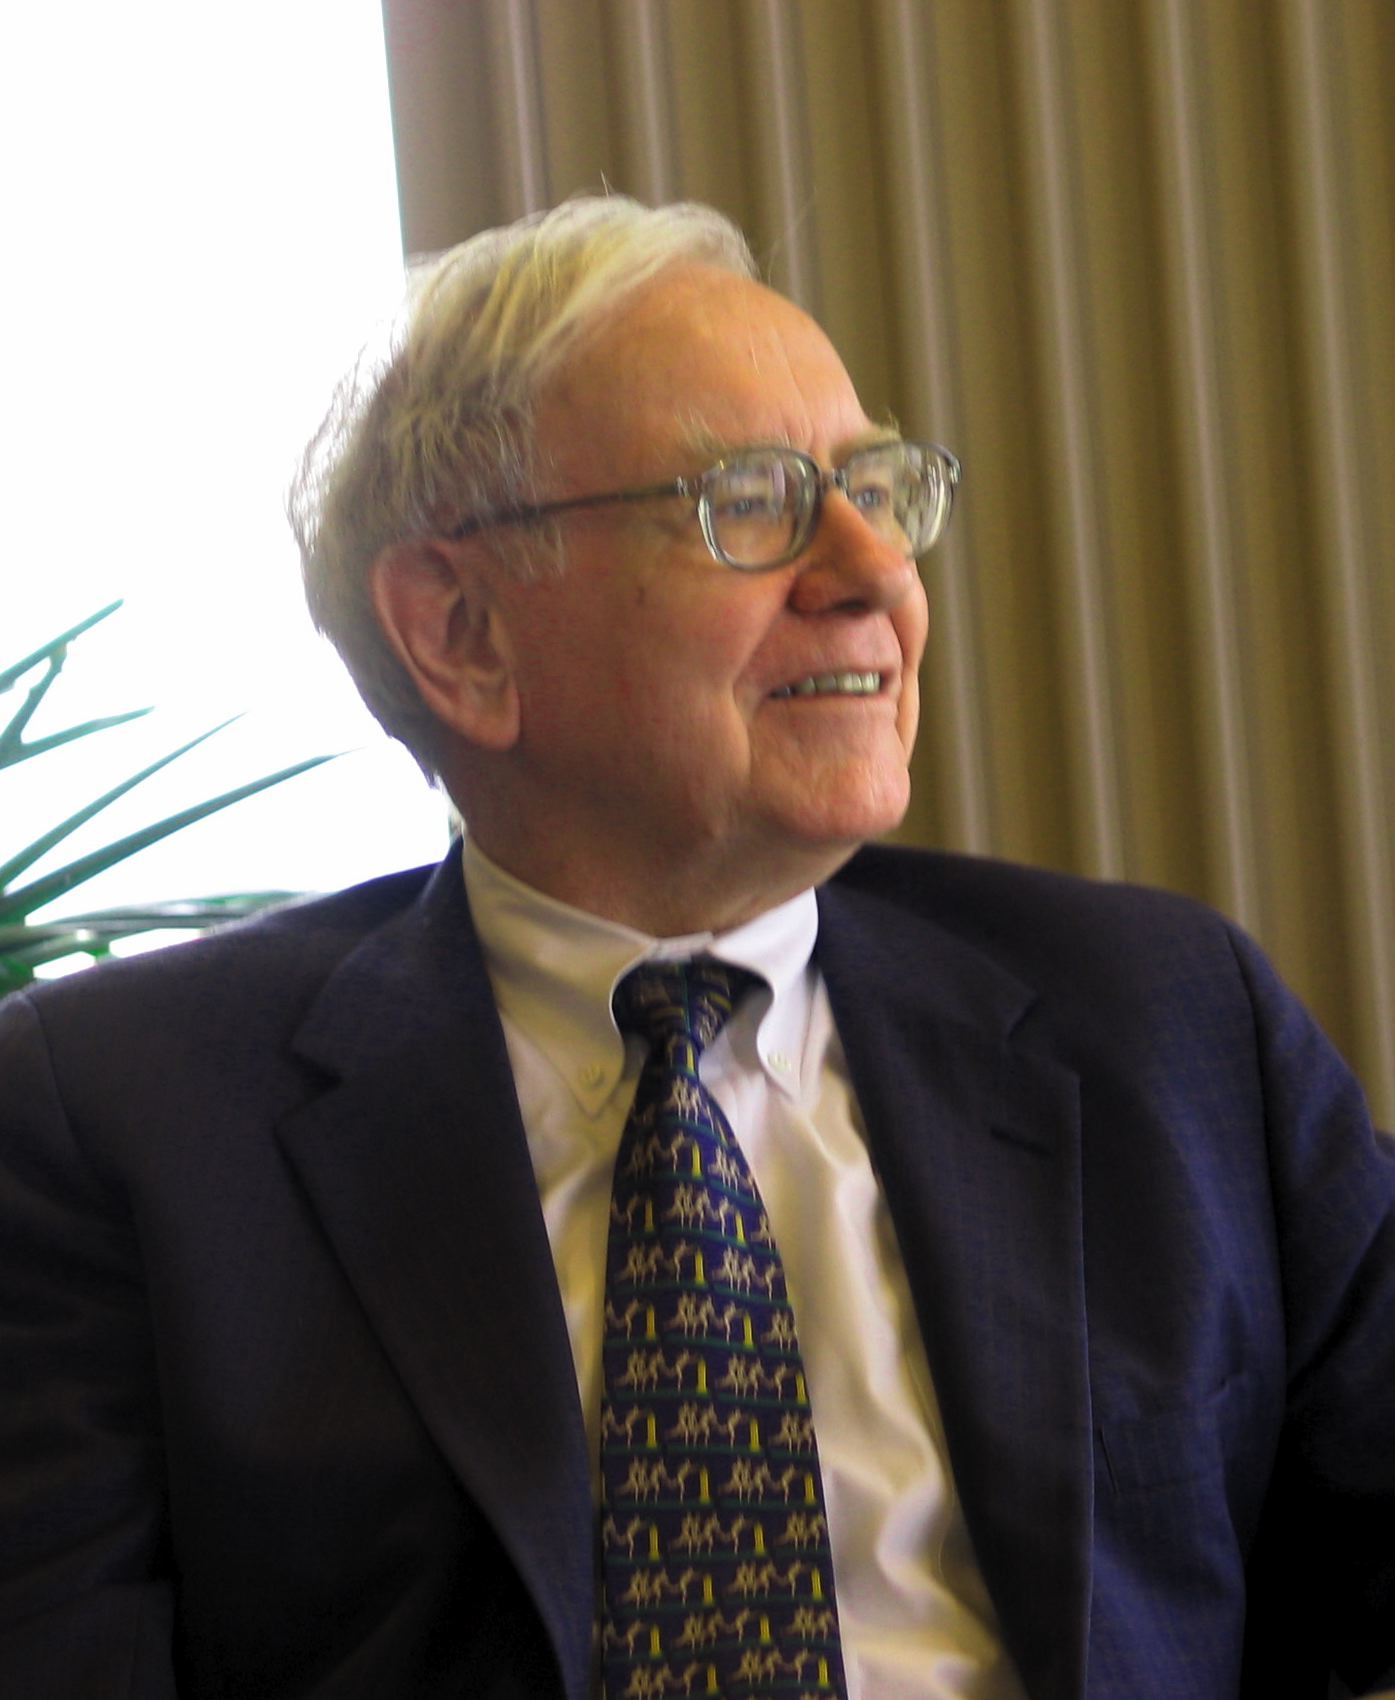 File:Warren Buffett KU Visit.jpg - Wikimedia Commons